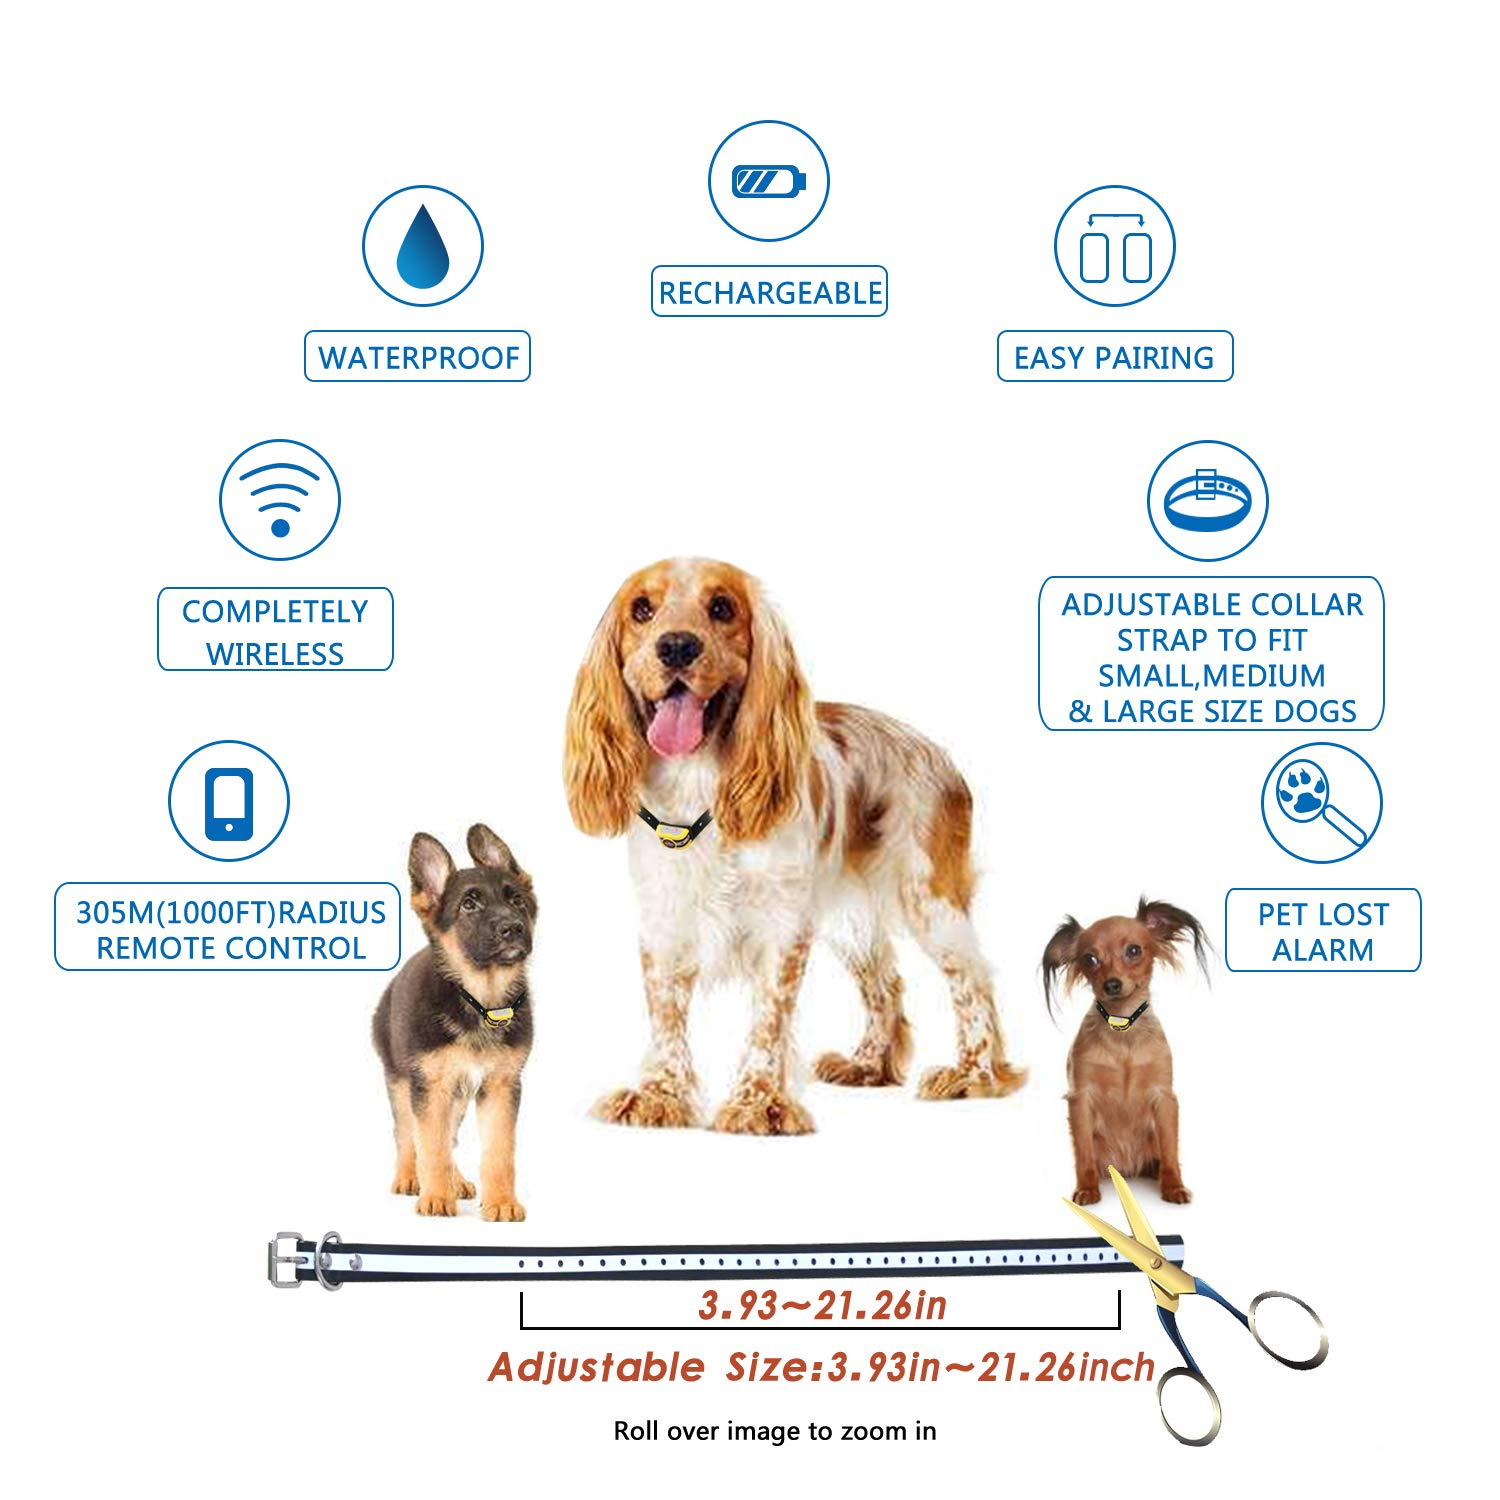 Wireless Dog Fence Electric Pet Containment System, Safe Effective No Randomly Shock Design, Adjustable Control Range 1000 Feet & Display Distance, Rechargeable Waterproof IPX7 Collar (2 Dog System) by JUSTSTART (Image #6)